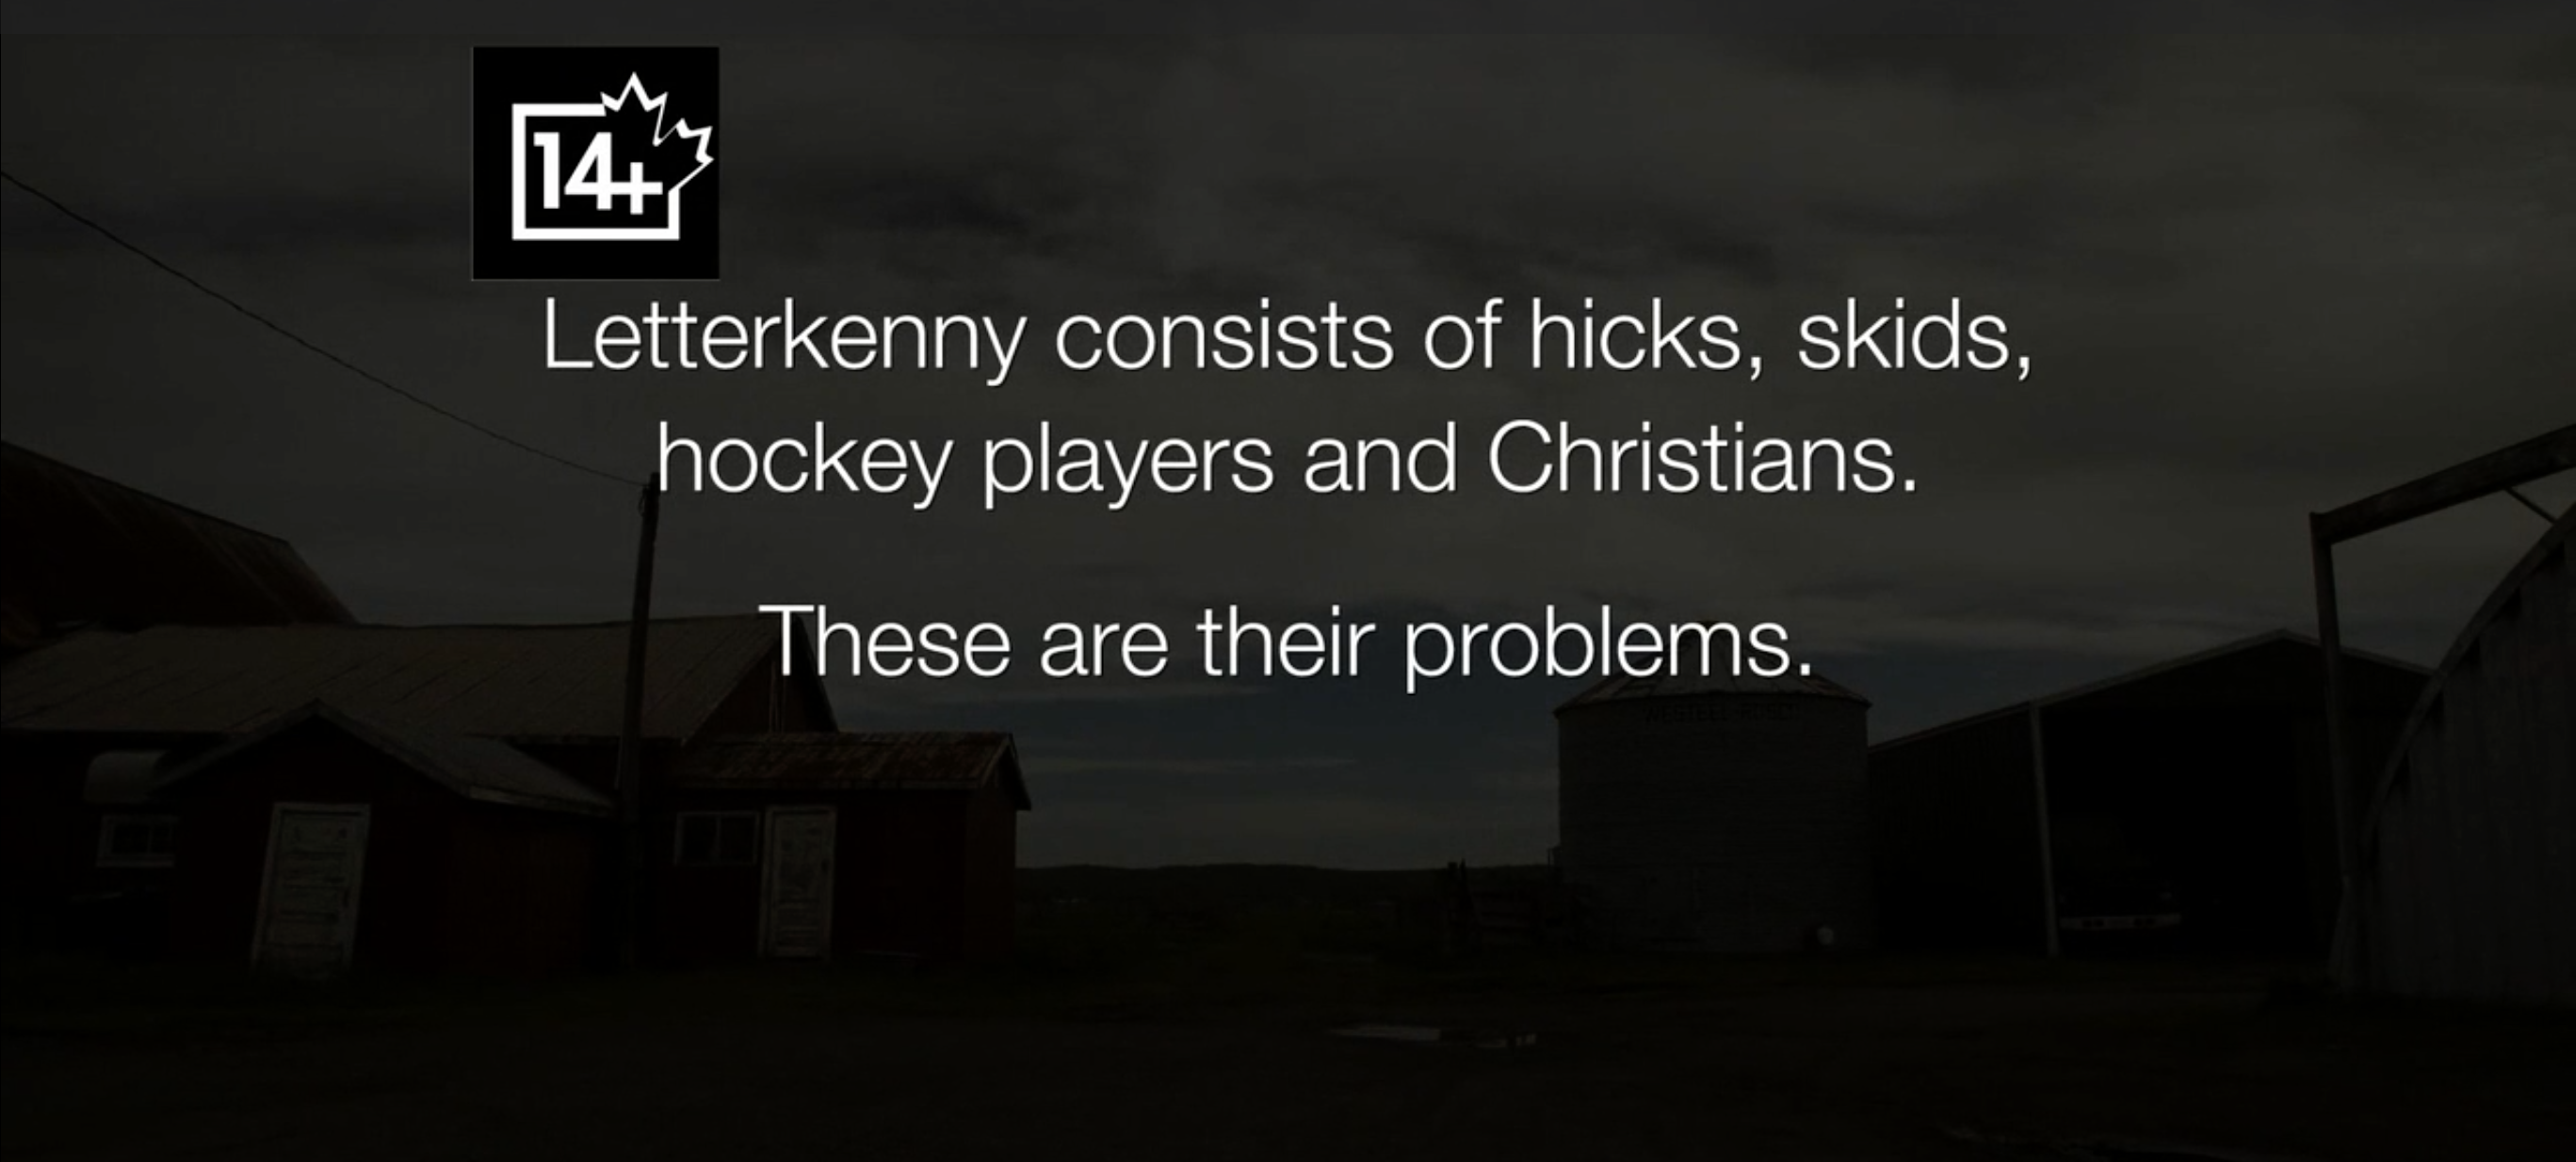 Letterkenny consists of hicks, skids, hockey players and Christians. These are their problems.